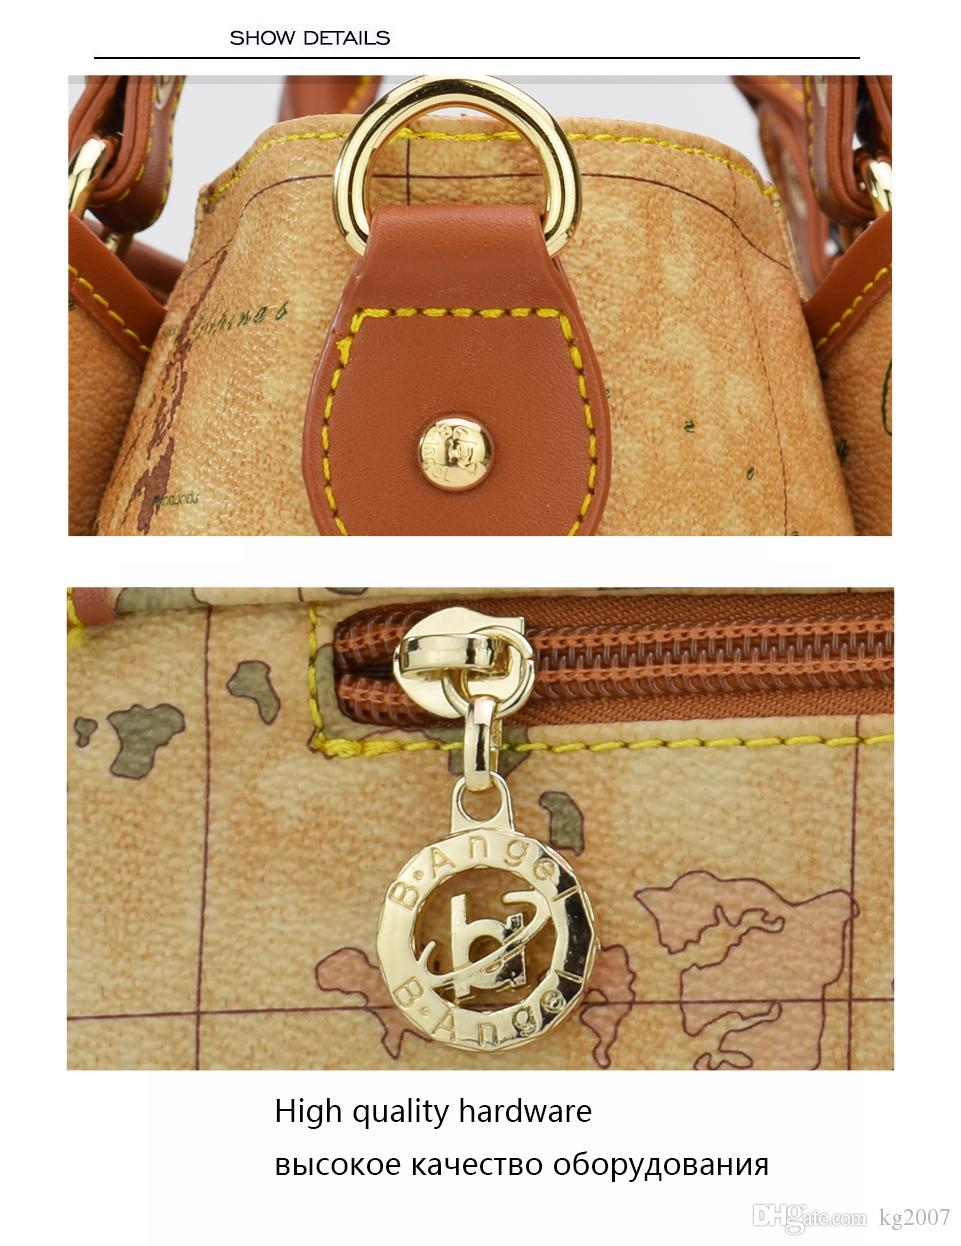 High quality world map women bag fashion women messenger bags High capacity Handbag brand bags design tote bag HC-Z-952